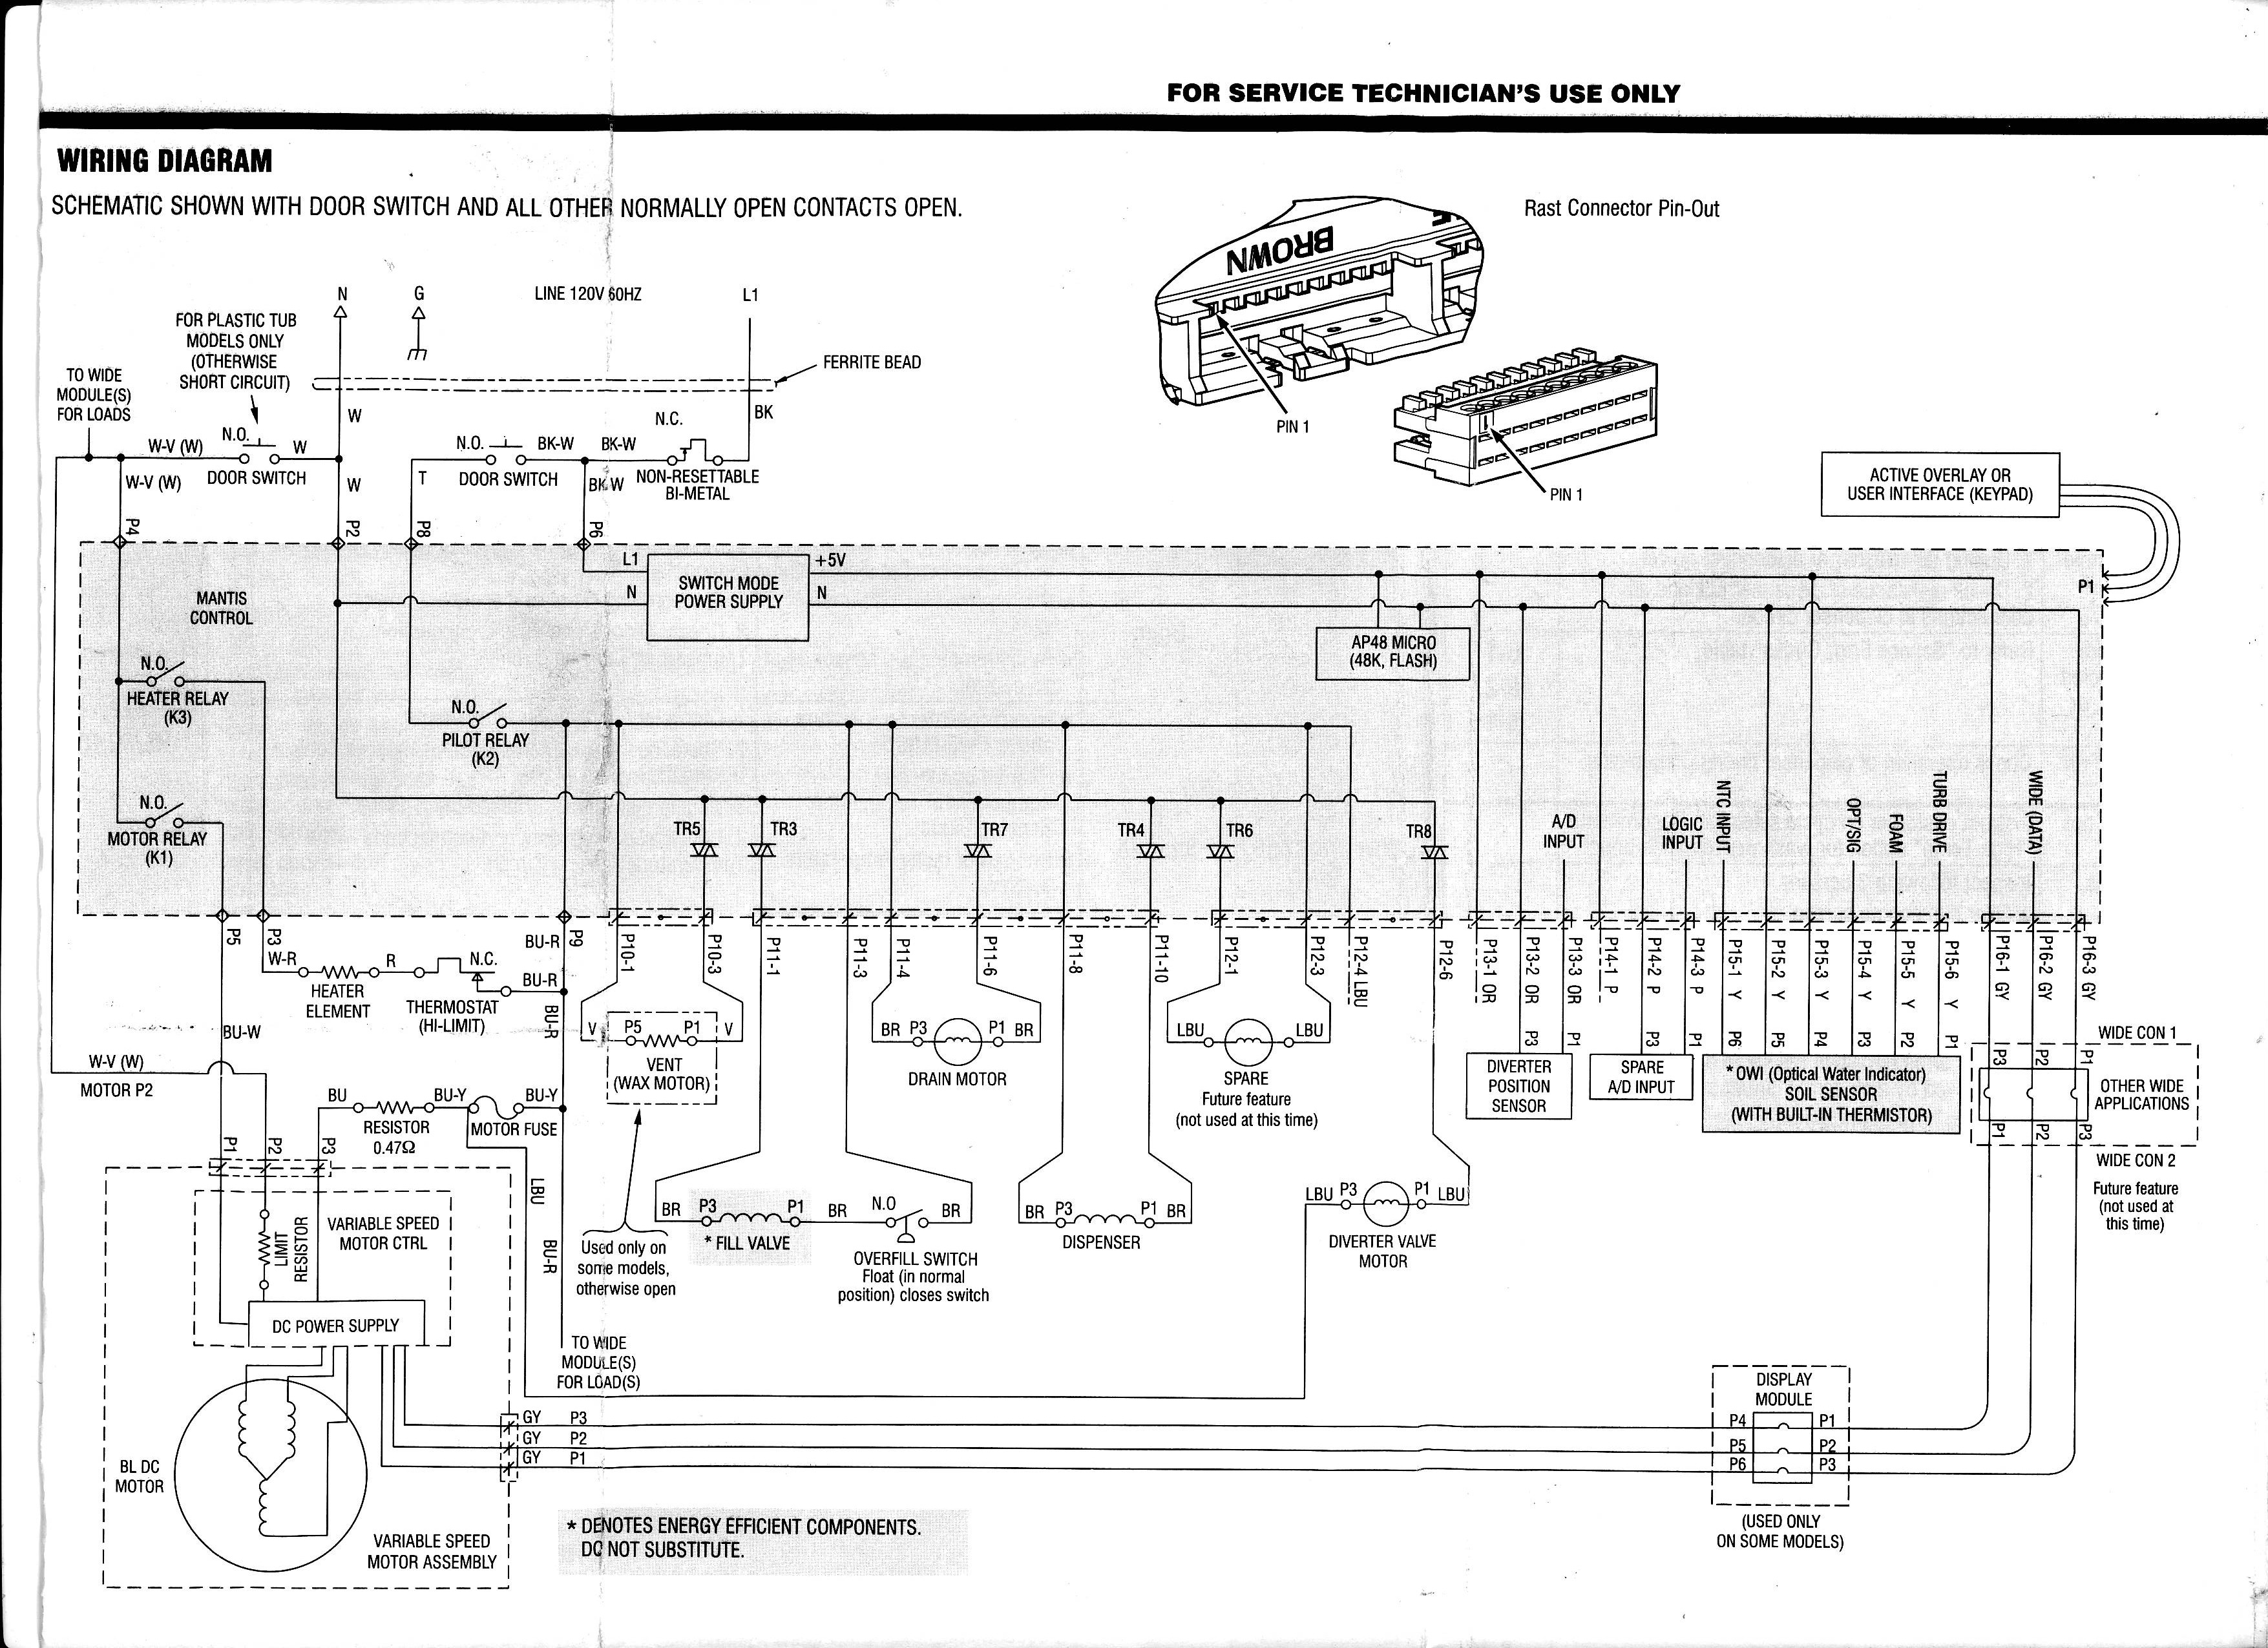 emachines wiring diagram wiring library asrock wiring diagram wiring diagrams 2012 01 21 033454 wiring diagram resize 840%2c610 asrock